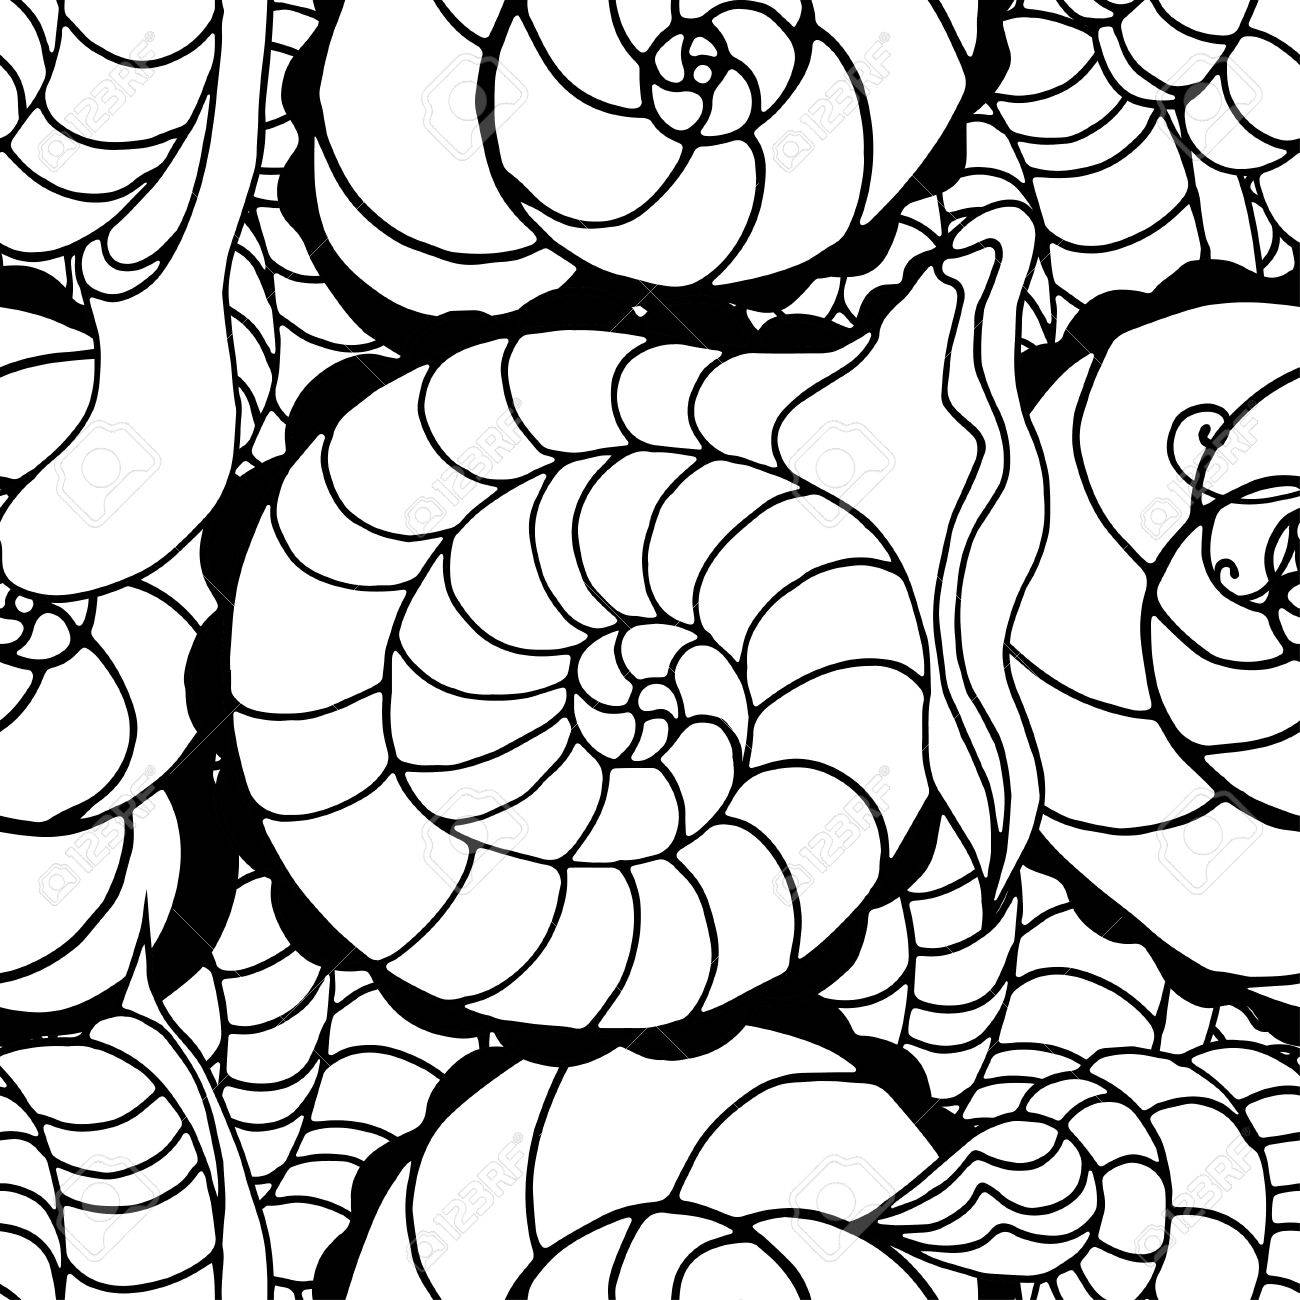 can be used for coloring book design for fabric - Coloring Book Printing